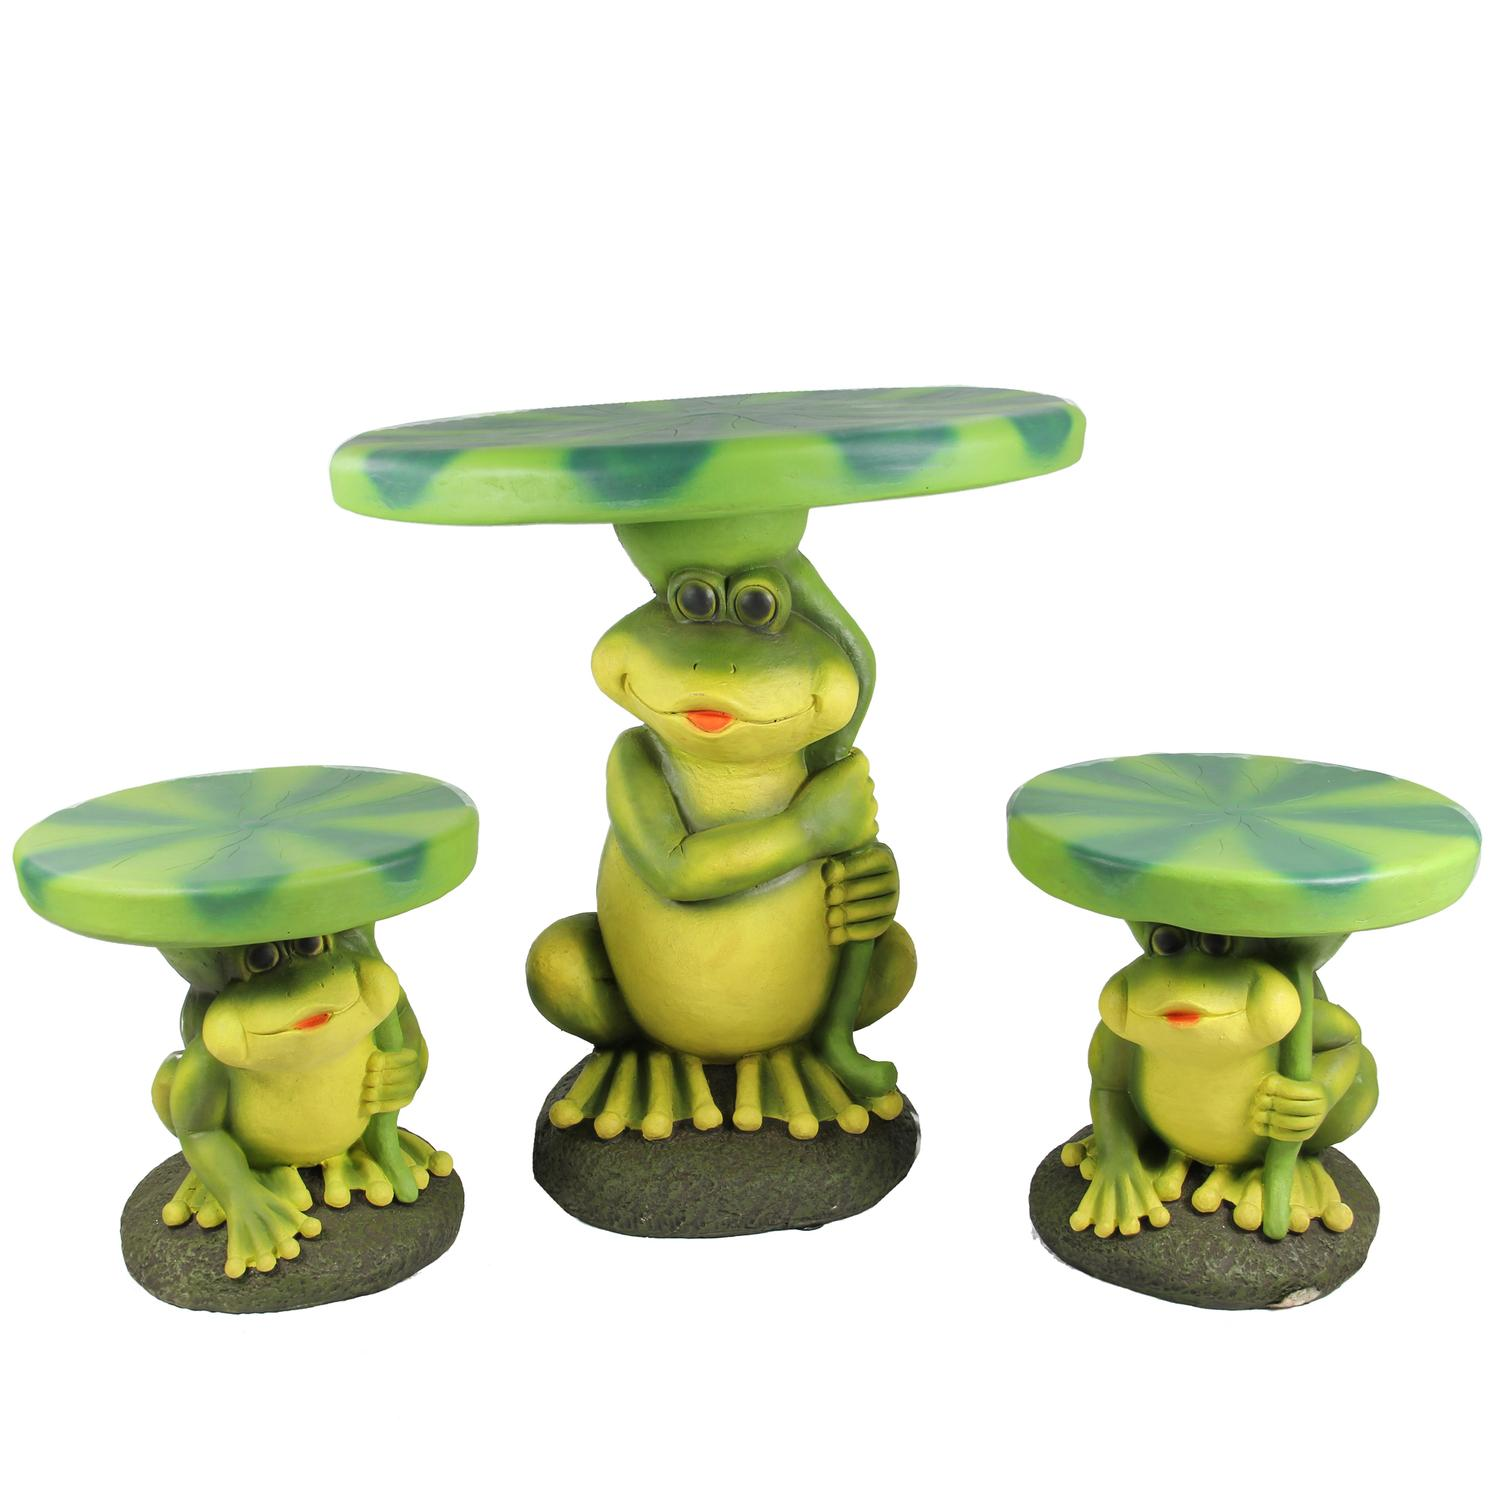 3-Piece Frog with Lily Pad Table & Chair Novelty Garden Patio Furniture Set